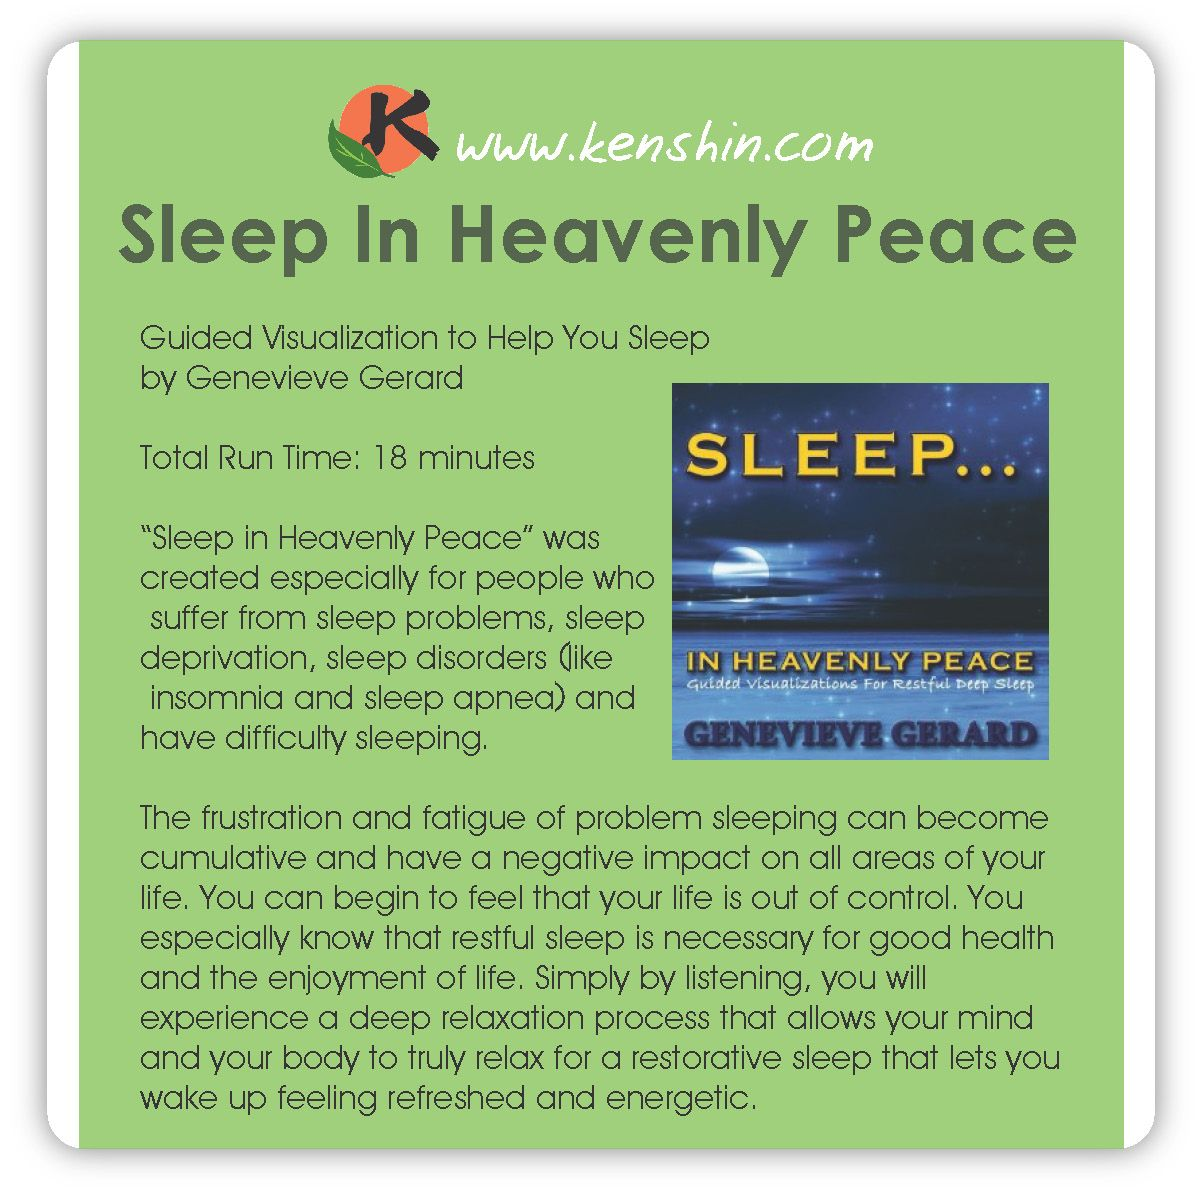 Sleep in Heavenly Peace <3 A Guided Visualization. Get yours at kenshin.com today!